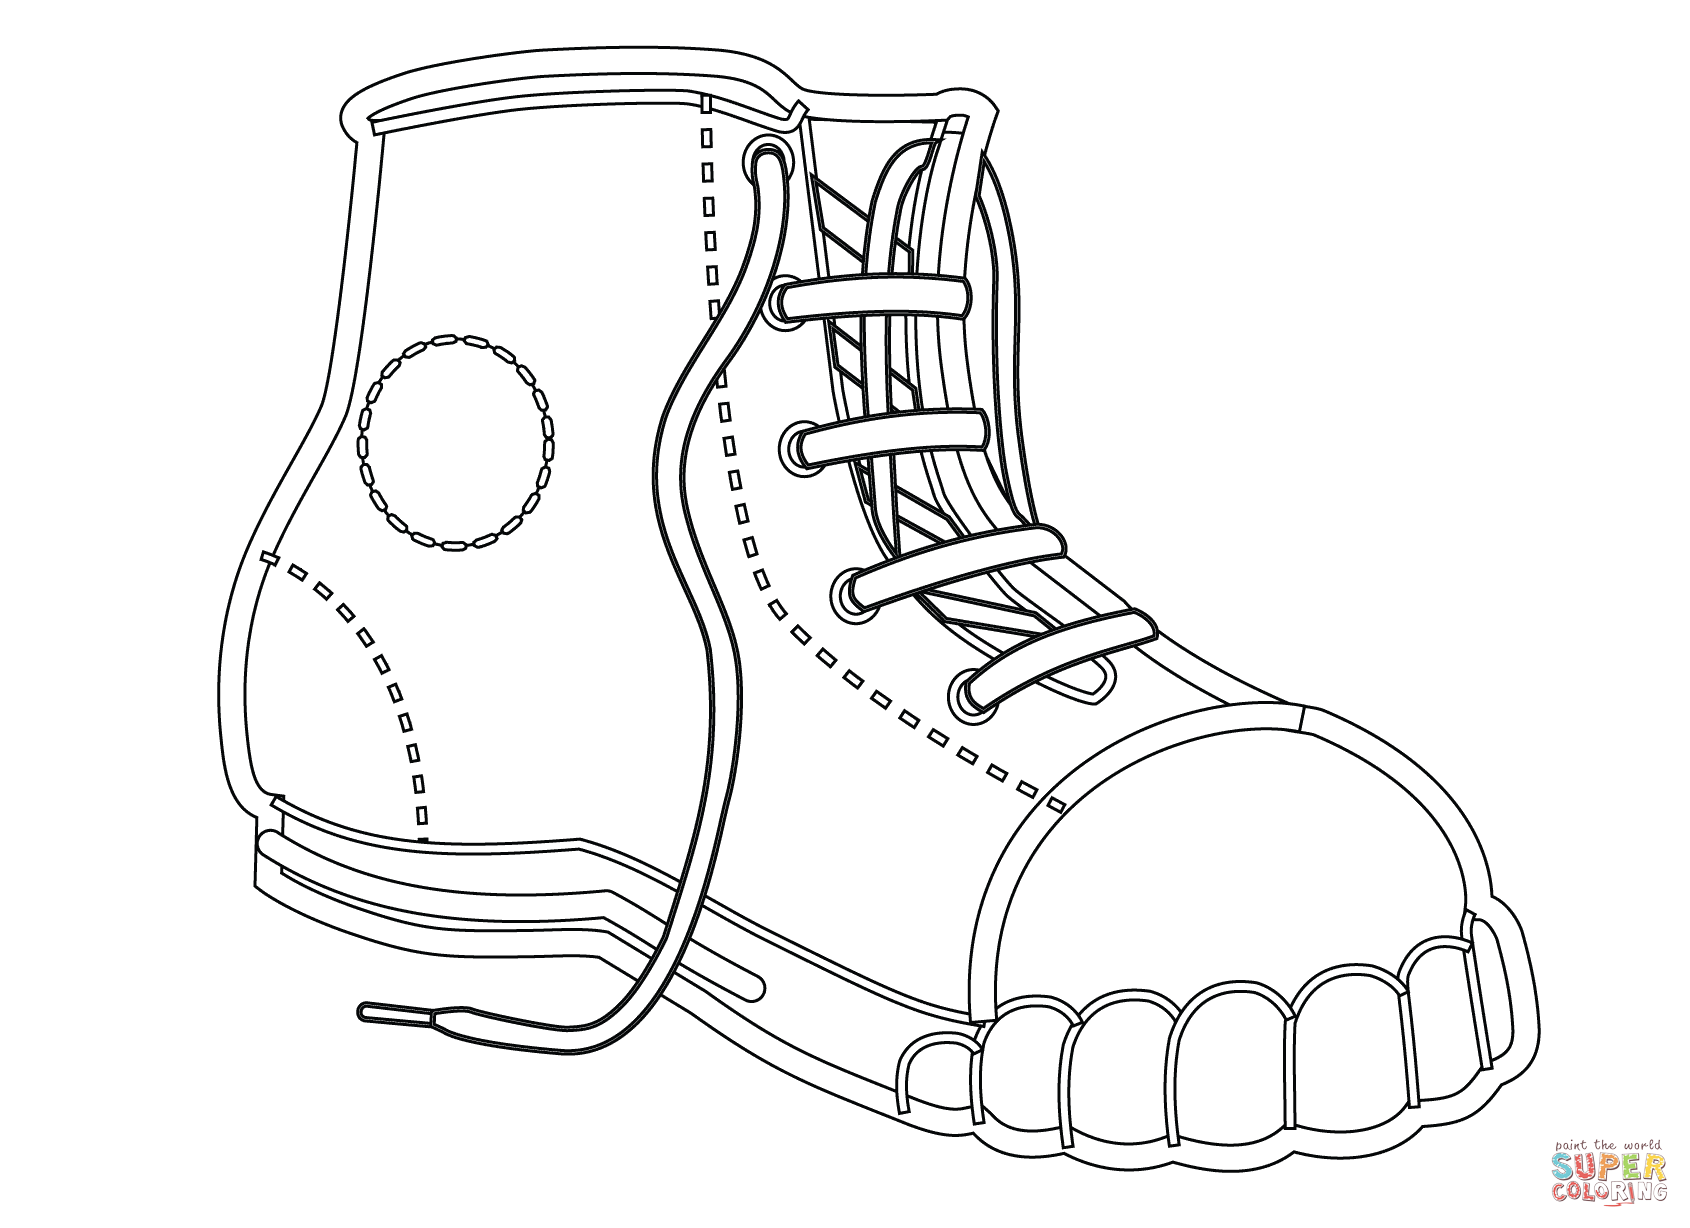 Shoe Outline Drawing At Getdrawings Com Free For